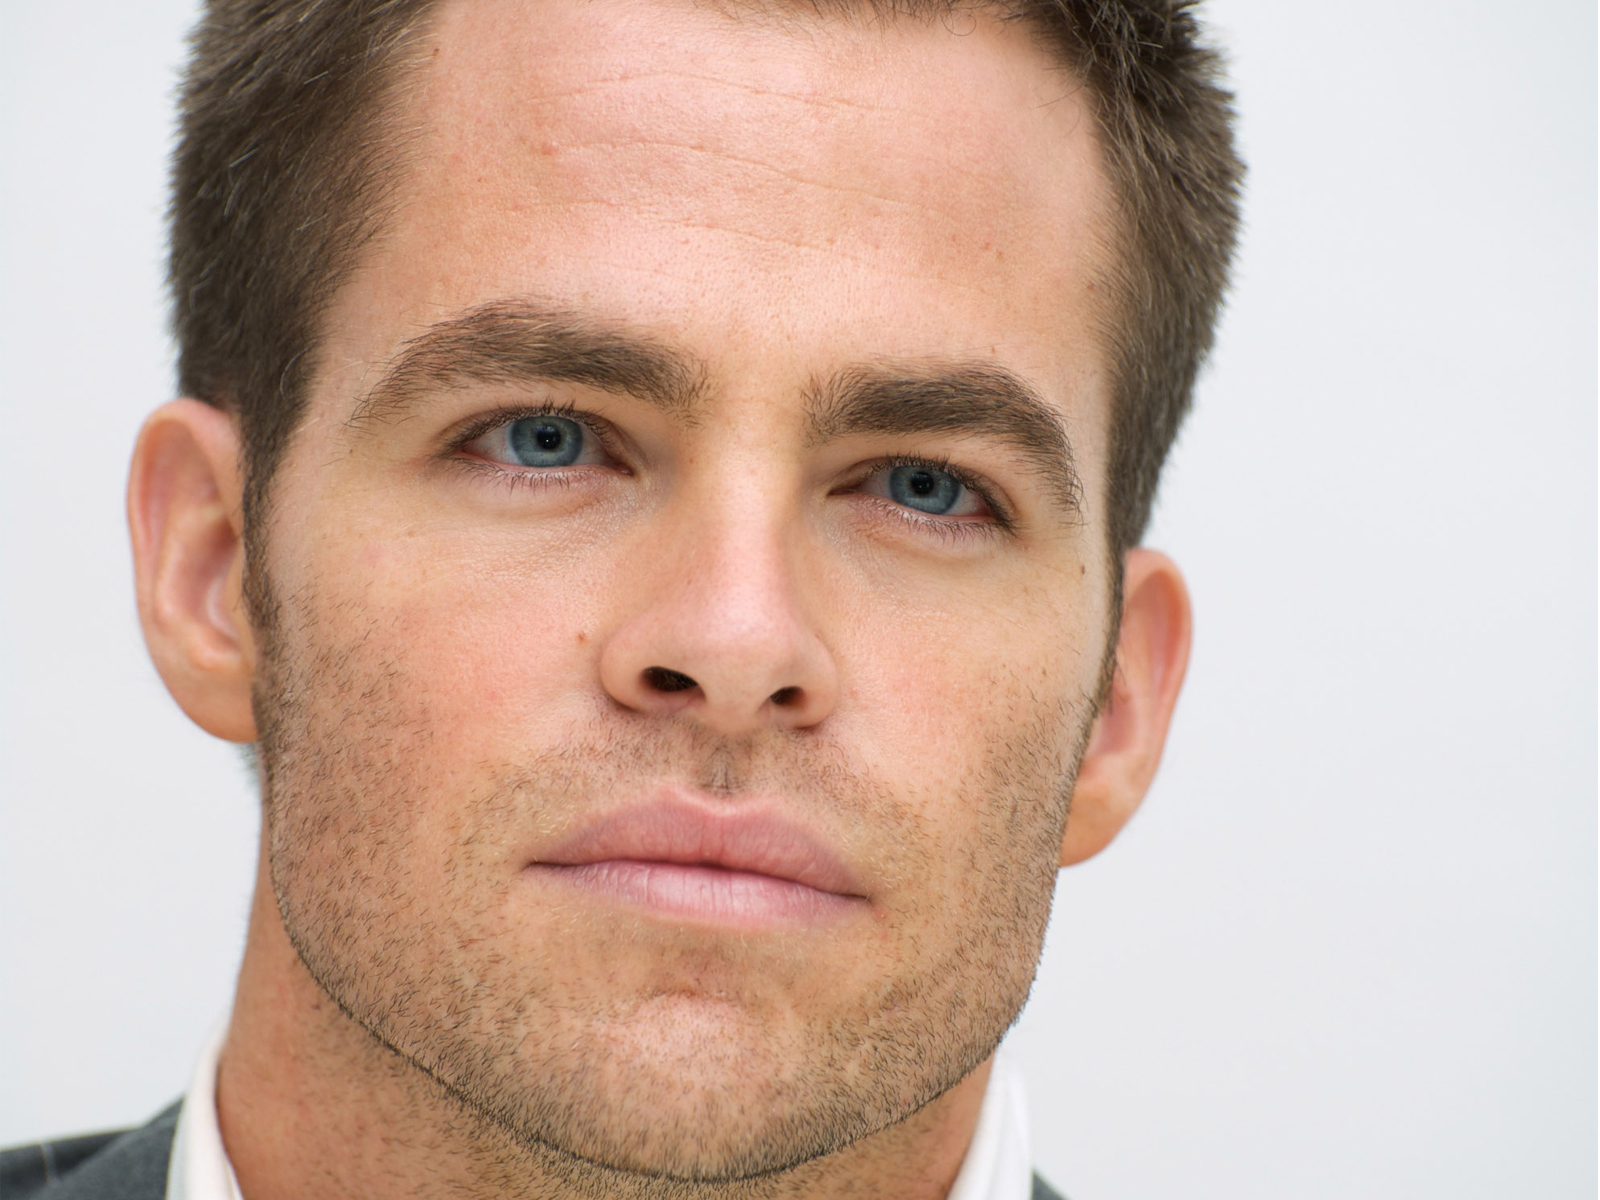 chris pine face photos download